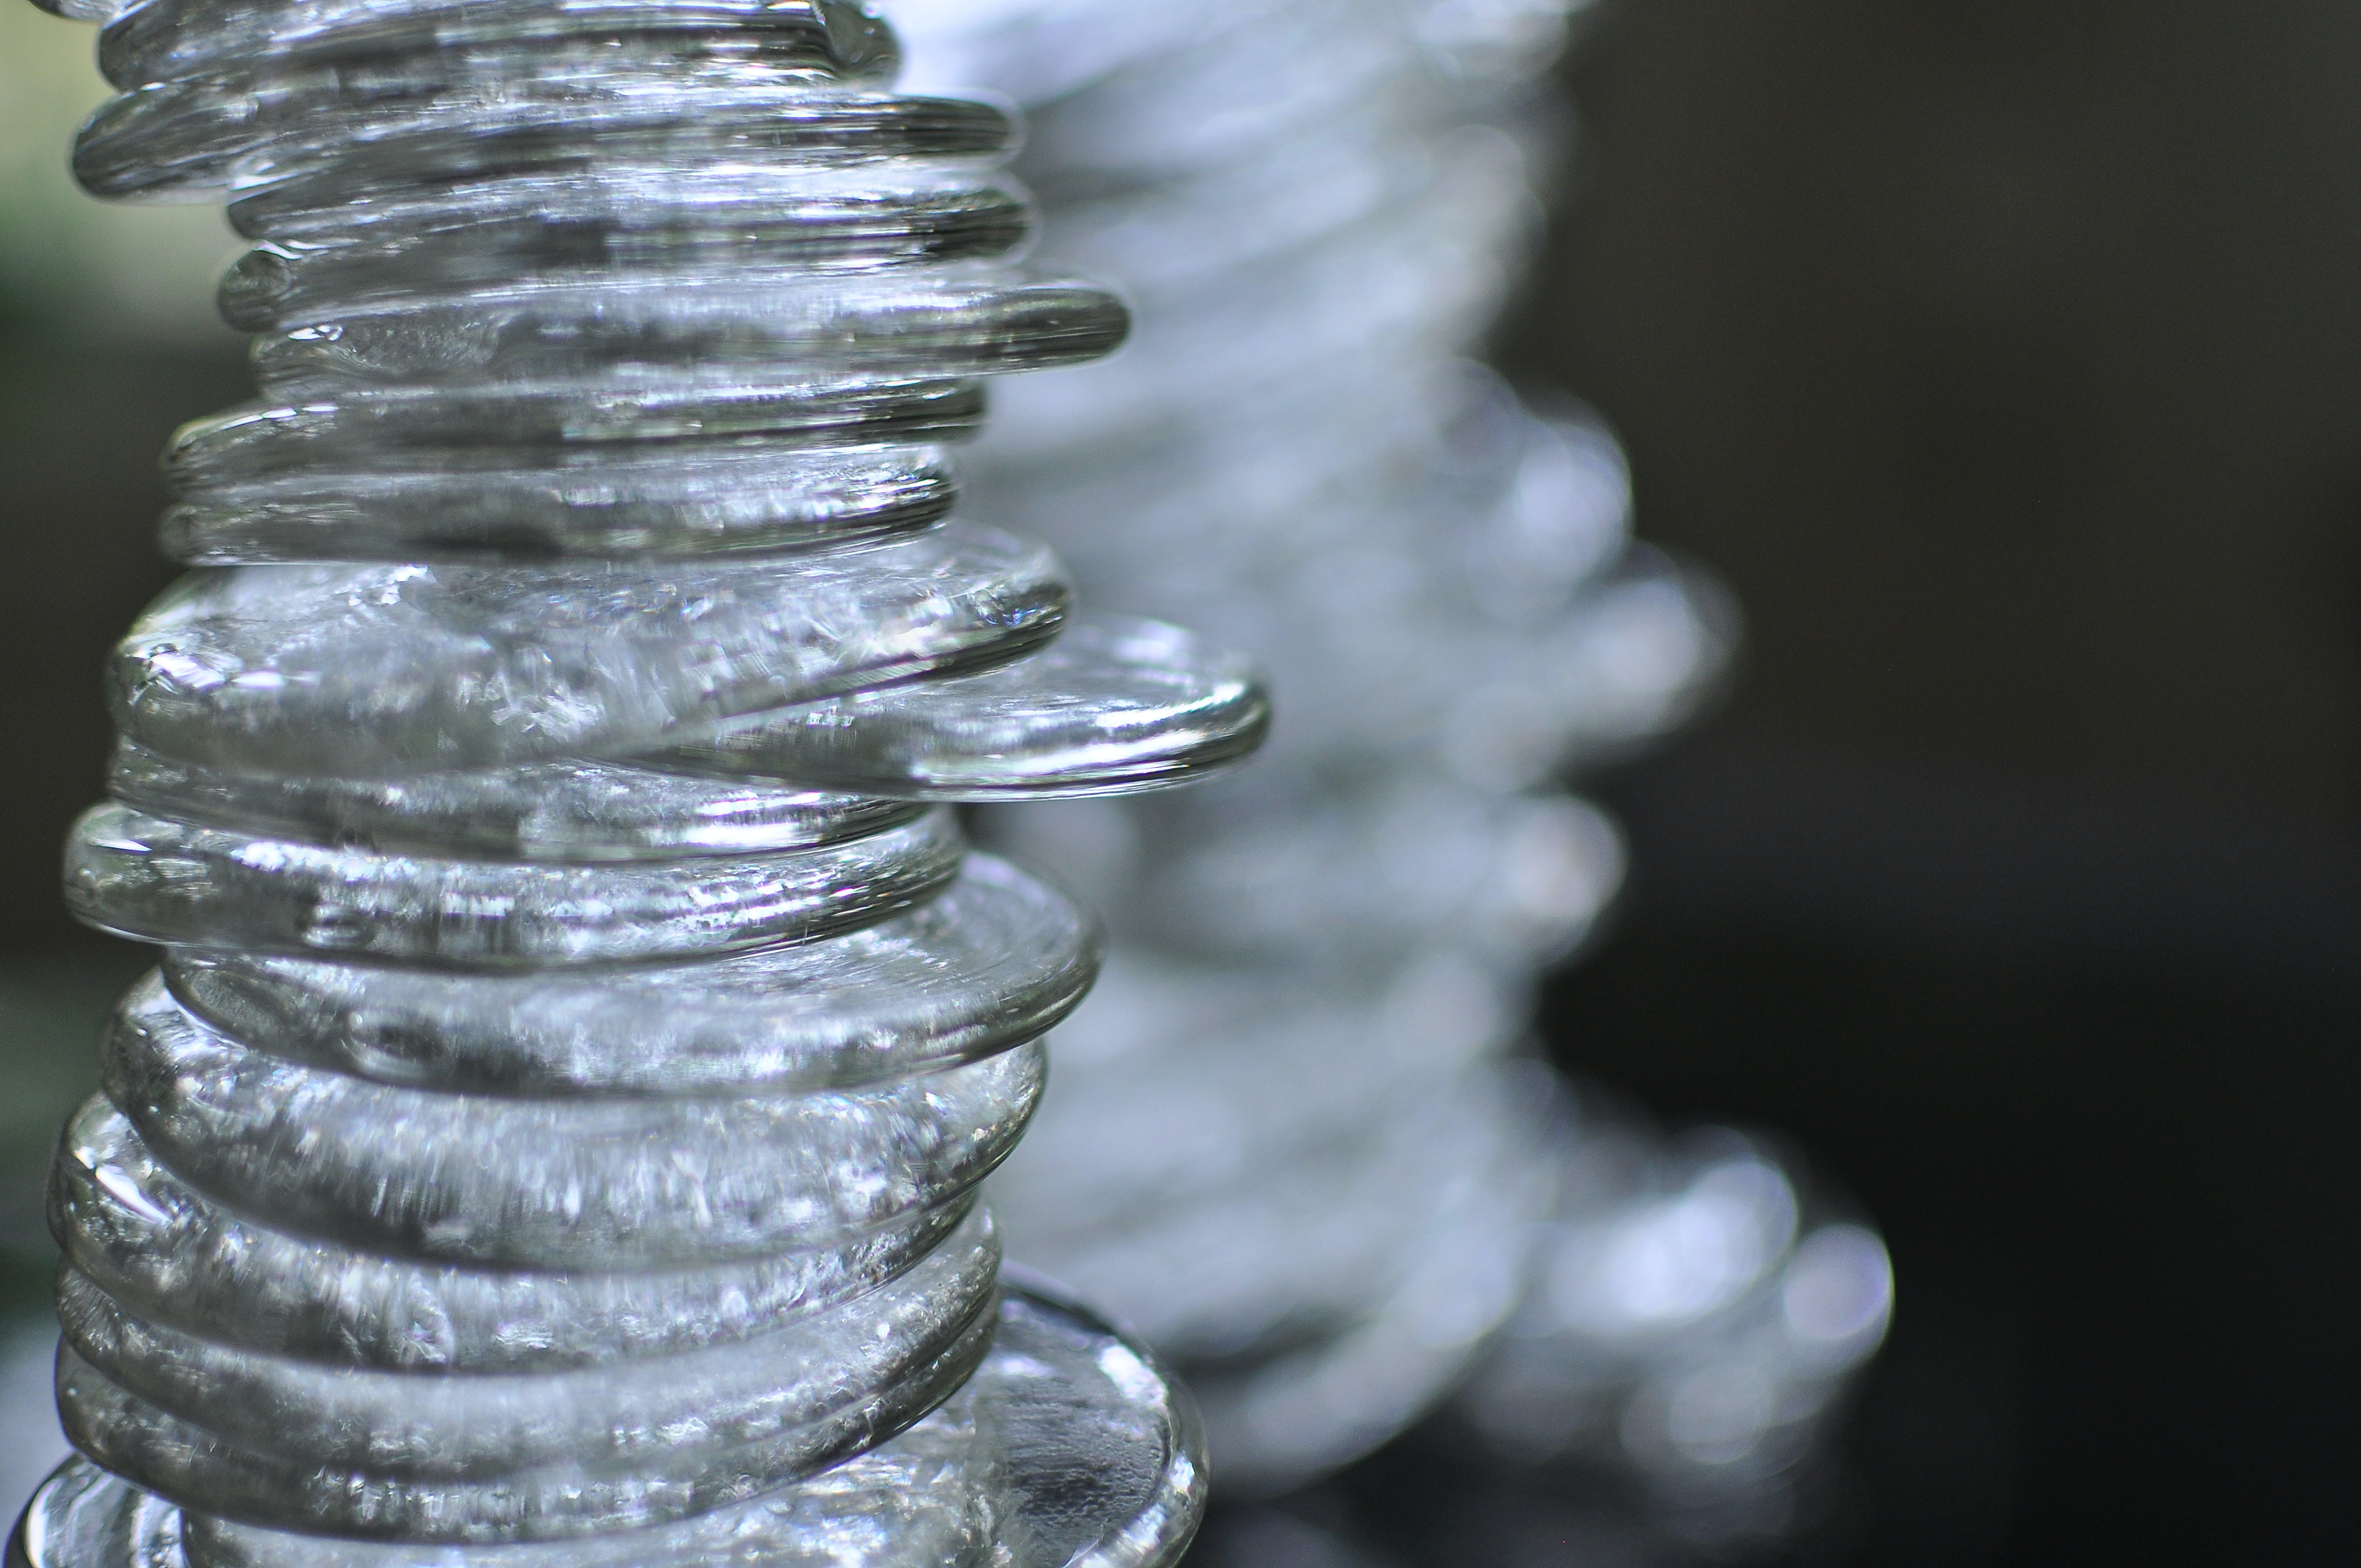 Glass discs unevenly balanced in a tower